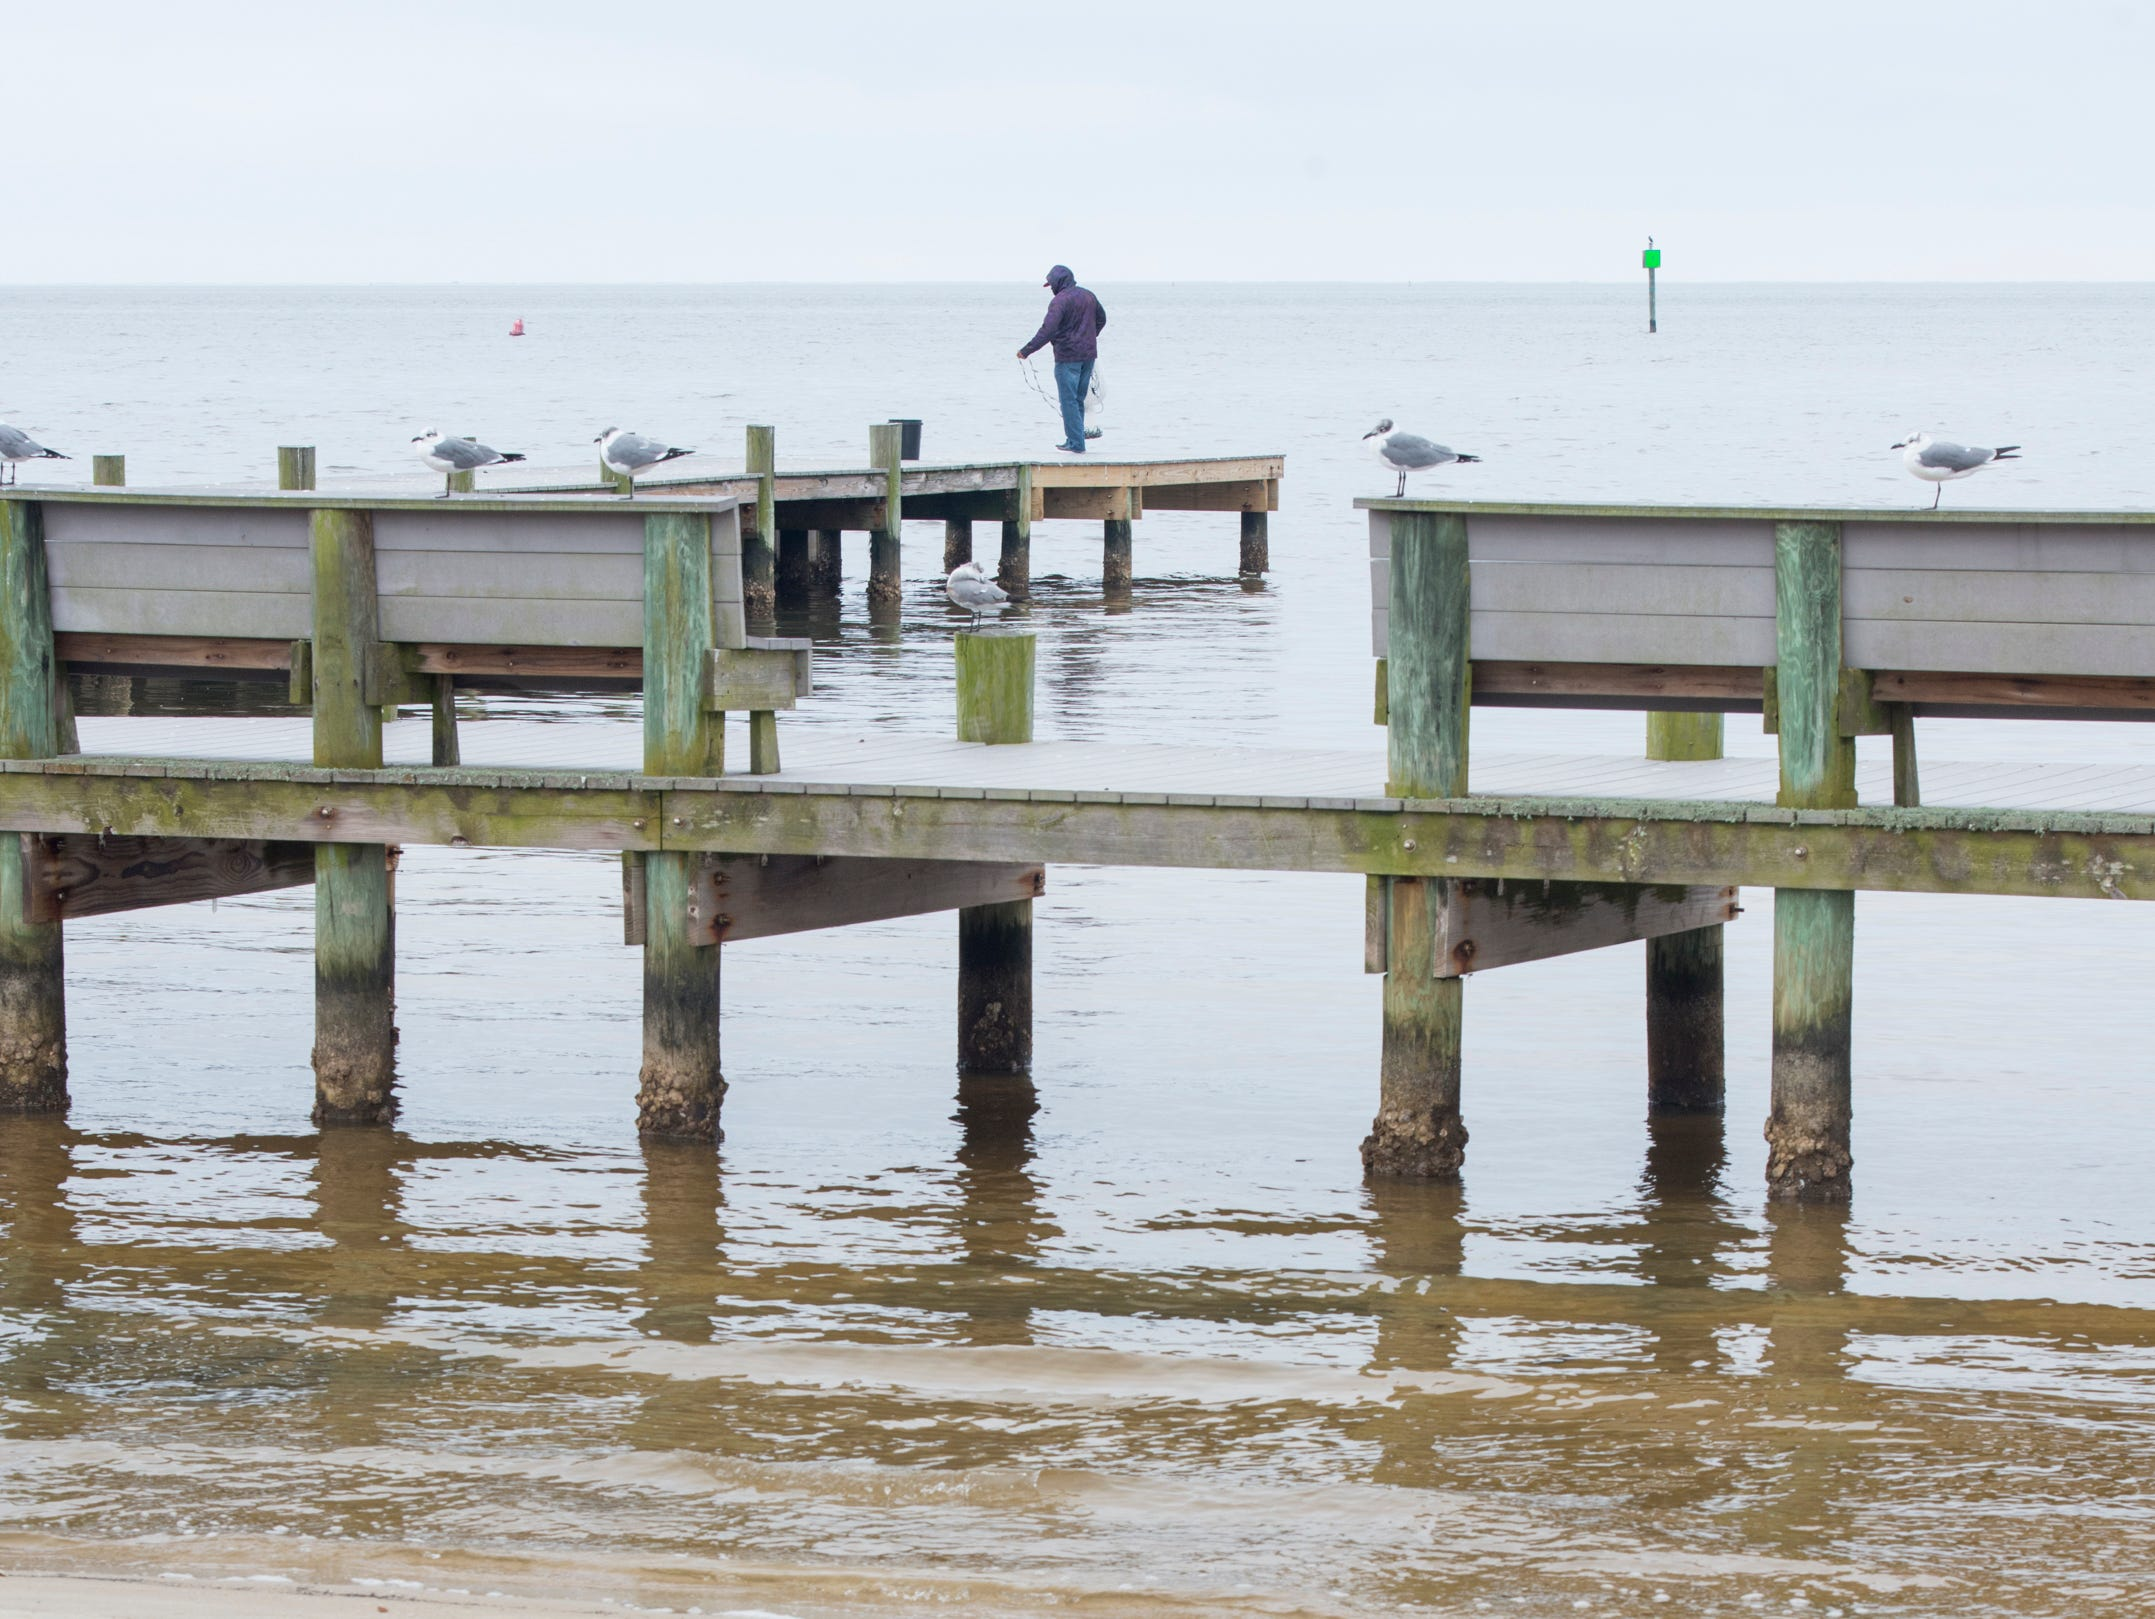 An angler fishes off the pier at Sanders Beach in Pensacola on Monday, February 4, 2019.  Pensacola Mayor Grover Robinson plans to ask the Pensacola City Council for $60,000 to have the landscape architecture firm SCAPE study ways to improvement access, connectivity and resiliency along the waterfront between Joe Patti's Seafood to Bayou Chico. If approved, the funding would extend the boundaries of an existing SCAPE funded by Pensacola entrepreneur and philanthropist Quint Studer.